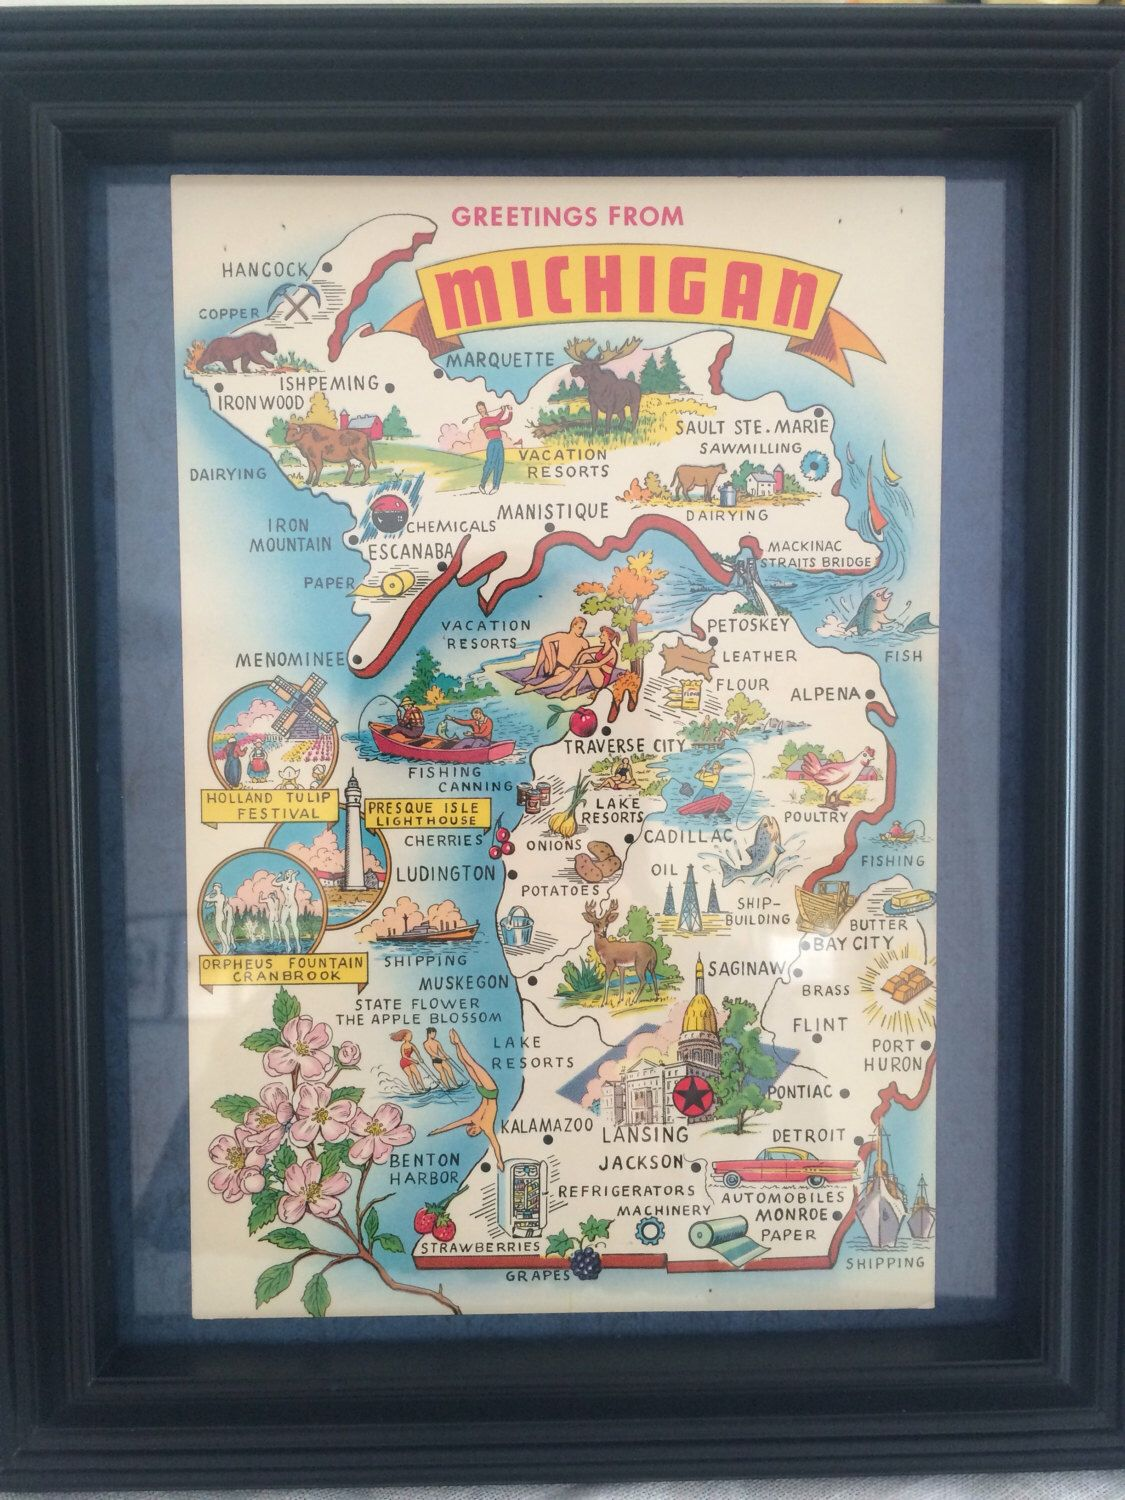 A personal favorite from my Etsy shop https://www.etsy.com/listing/502604272/8-x-10-framed-vintage-michigan-map